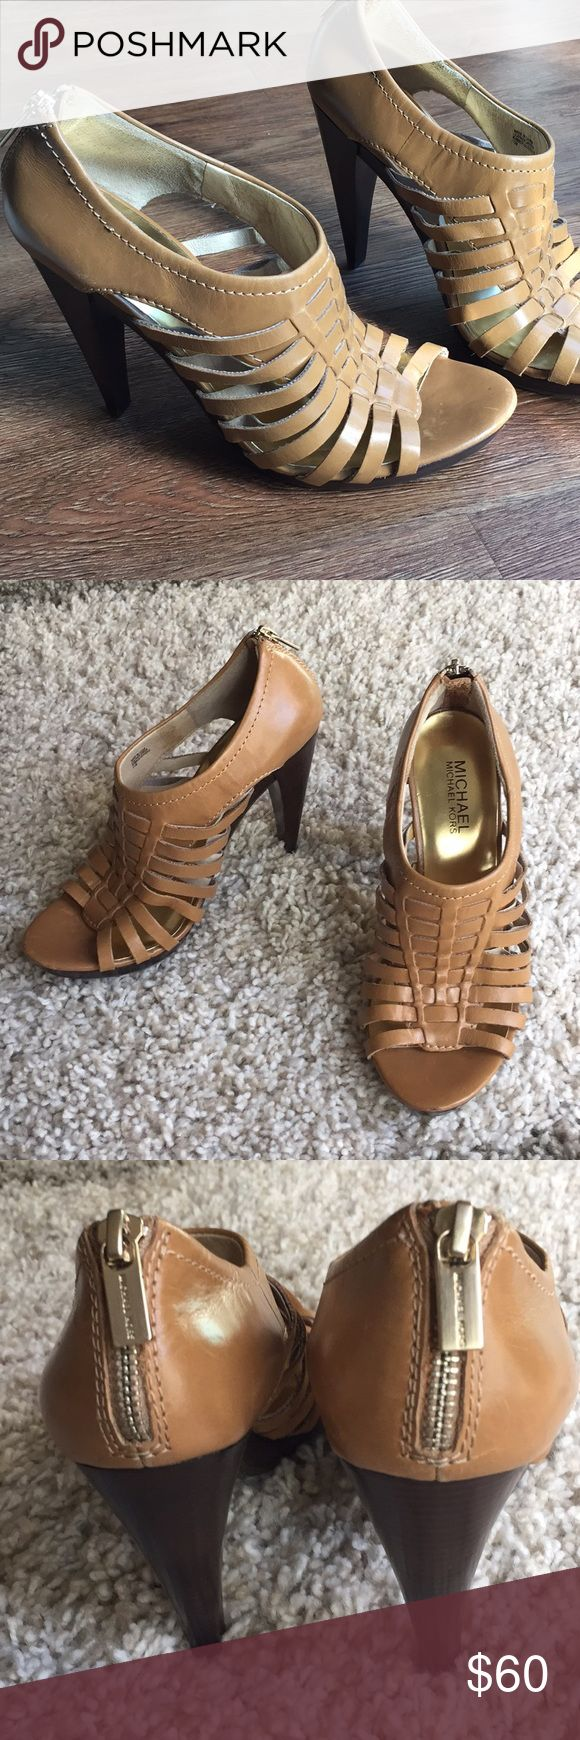 Michael Kors leather high-heeled sandals Is your shoe collection ready for summer? These edgy sandals are in excellent condition. The camel brown color is very versatile. Pair them with soft, earthy colored tops and dresses for outfits that epitomize boho style. MICHAEL Michael Kors Shoes Heels